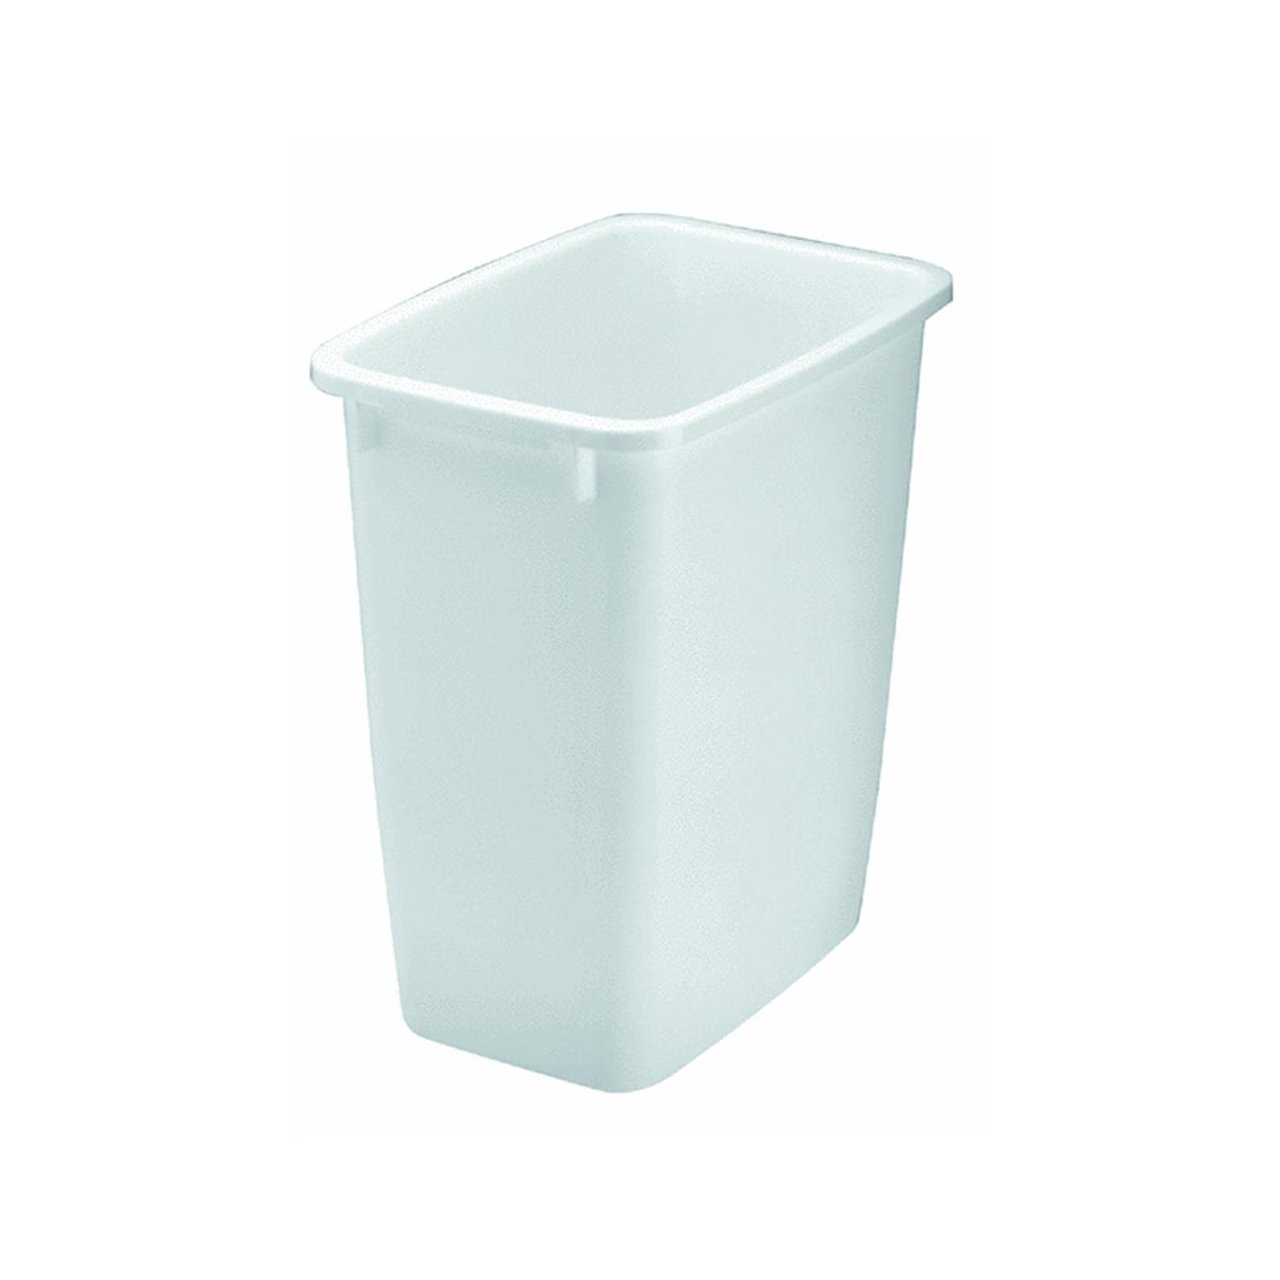 Amazon.com: 21 Quart Wastebasket in White: Home & Kitchen